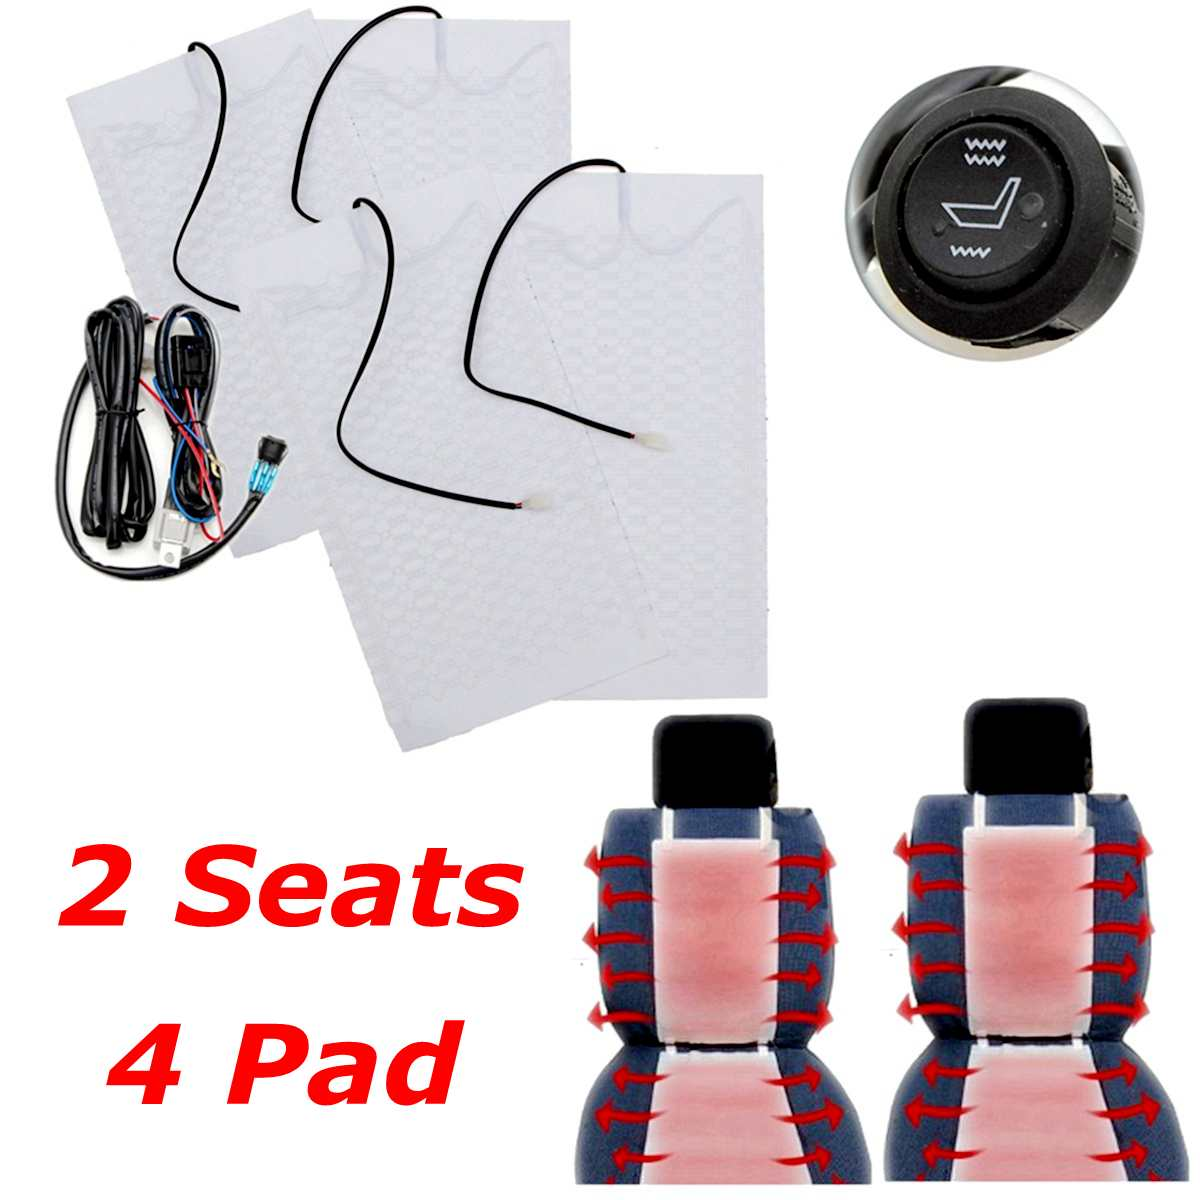 Switch-Kit Seat-Covers Heater-Pad Warmer Universal High/low-Heated-Seat Winter Car 4pcs